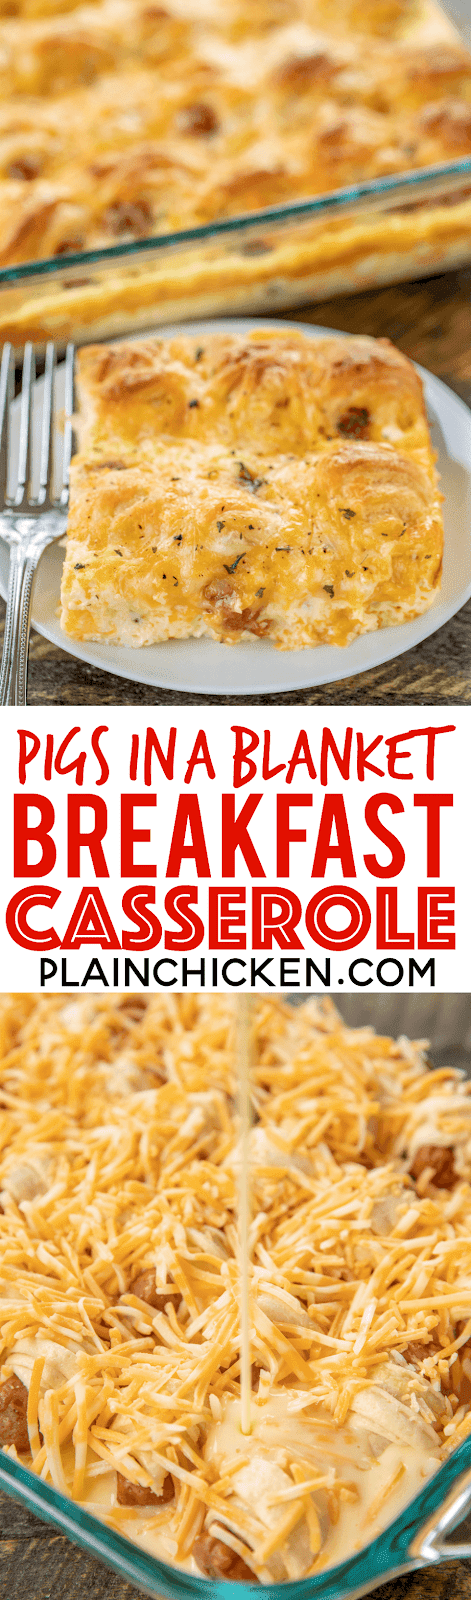 Pigs in a Blanket Breakfast Casserole - seriously the BEST!!! Crescent rolls, dijon mustard, lit'l smokies, cheese, eggs and milk. SO simple and SOOO delicious! Great for breakfast, brunch, lunch, dinner and tailgating! I mean, nothing says football food like pigs in a blanket. Everyone LOVED this easy breakfast casserole. They cleaned their plate and asked for seconds. Success!!! #breakfast #casserole #pigsinablanket #breakfastcasserole